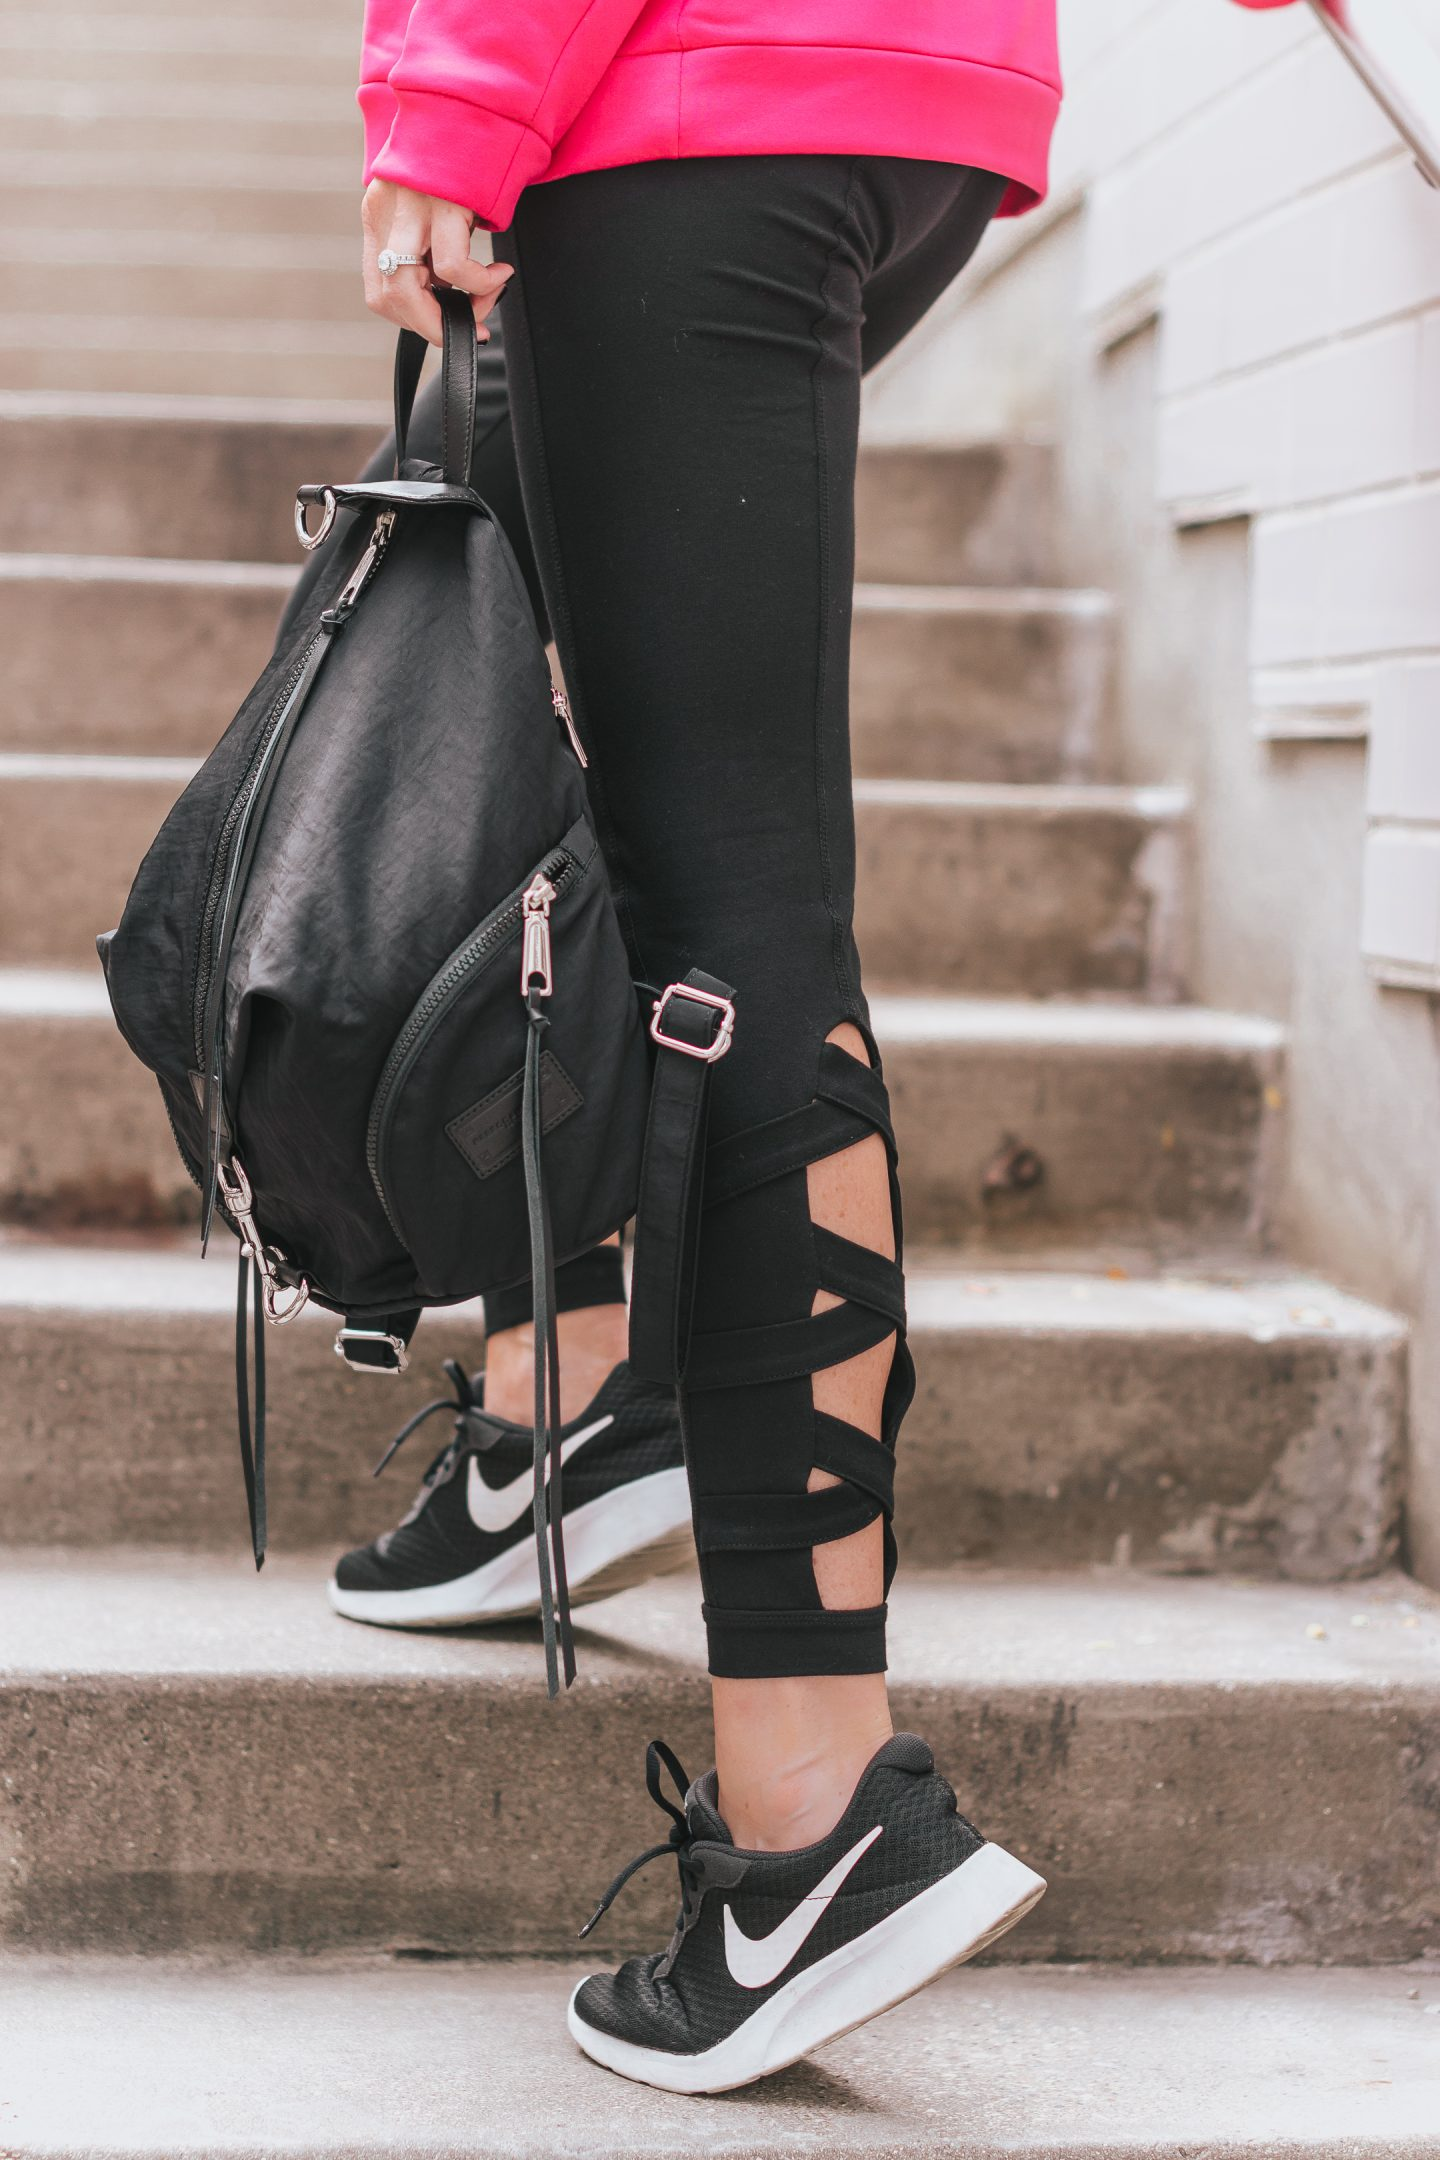 athleisure outfit, Stage Stores Breast cancer Awareness Month, thoughts on being a role model for my daughter, lessons learned from cancer survivors, what it means to be a strong role model for my daughter